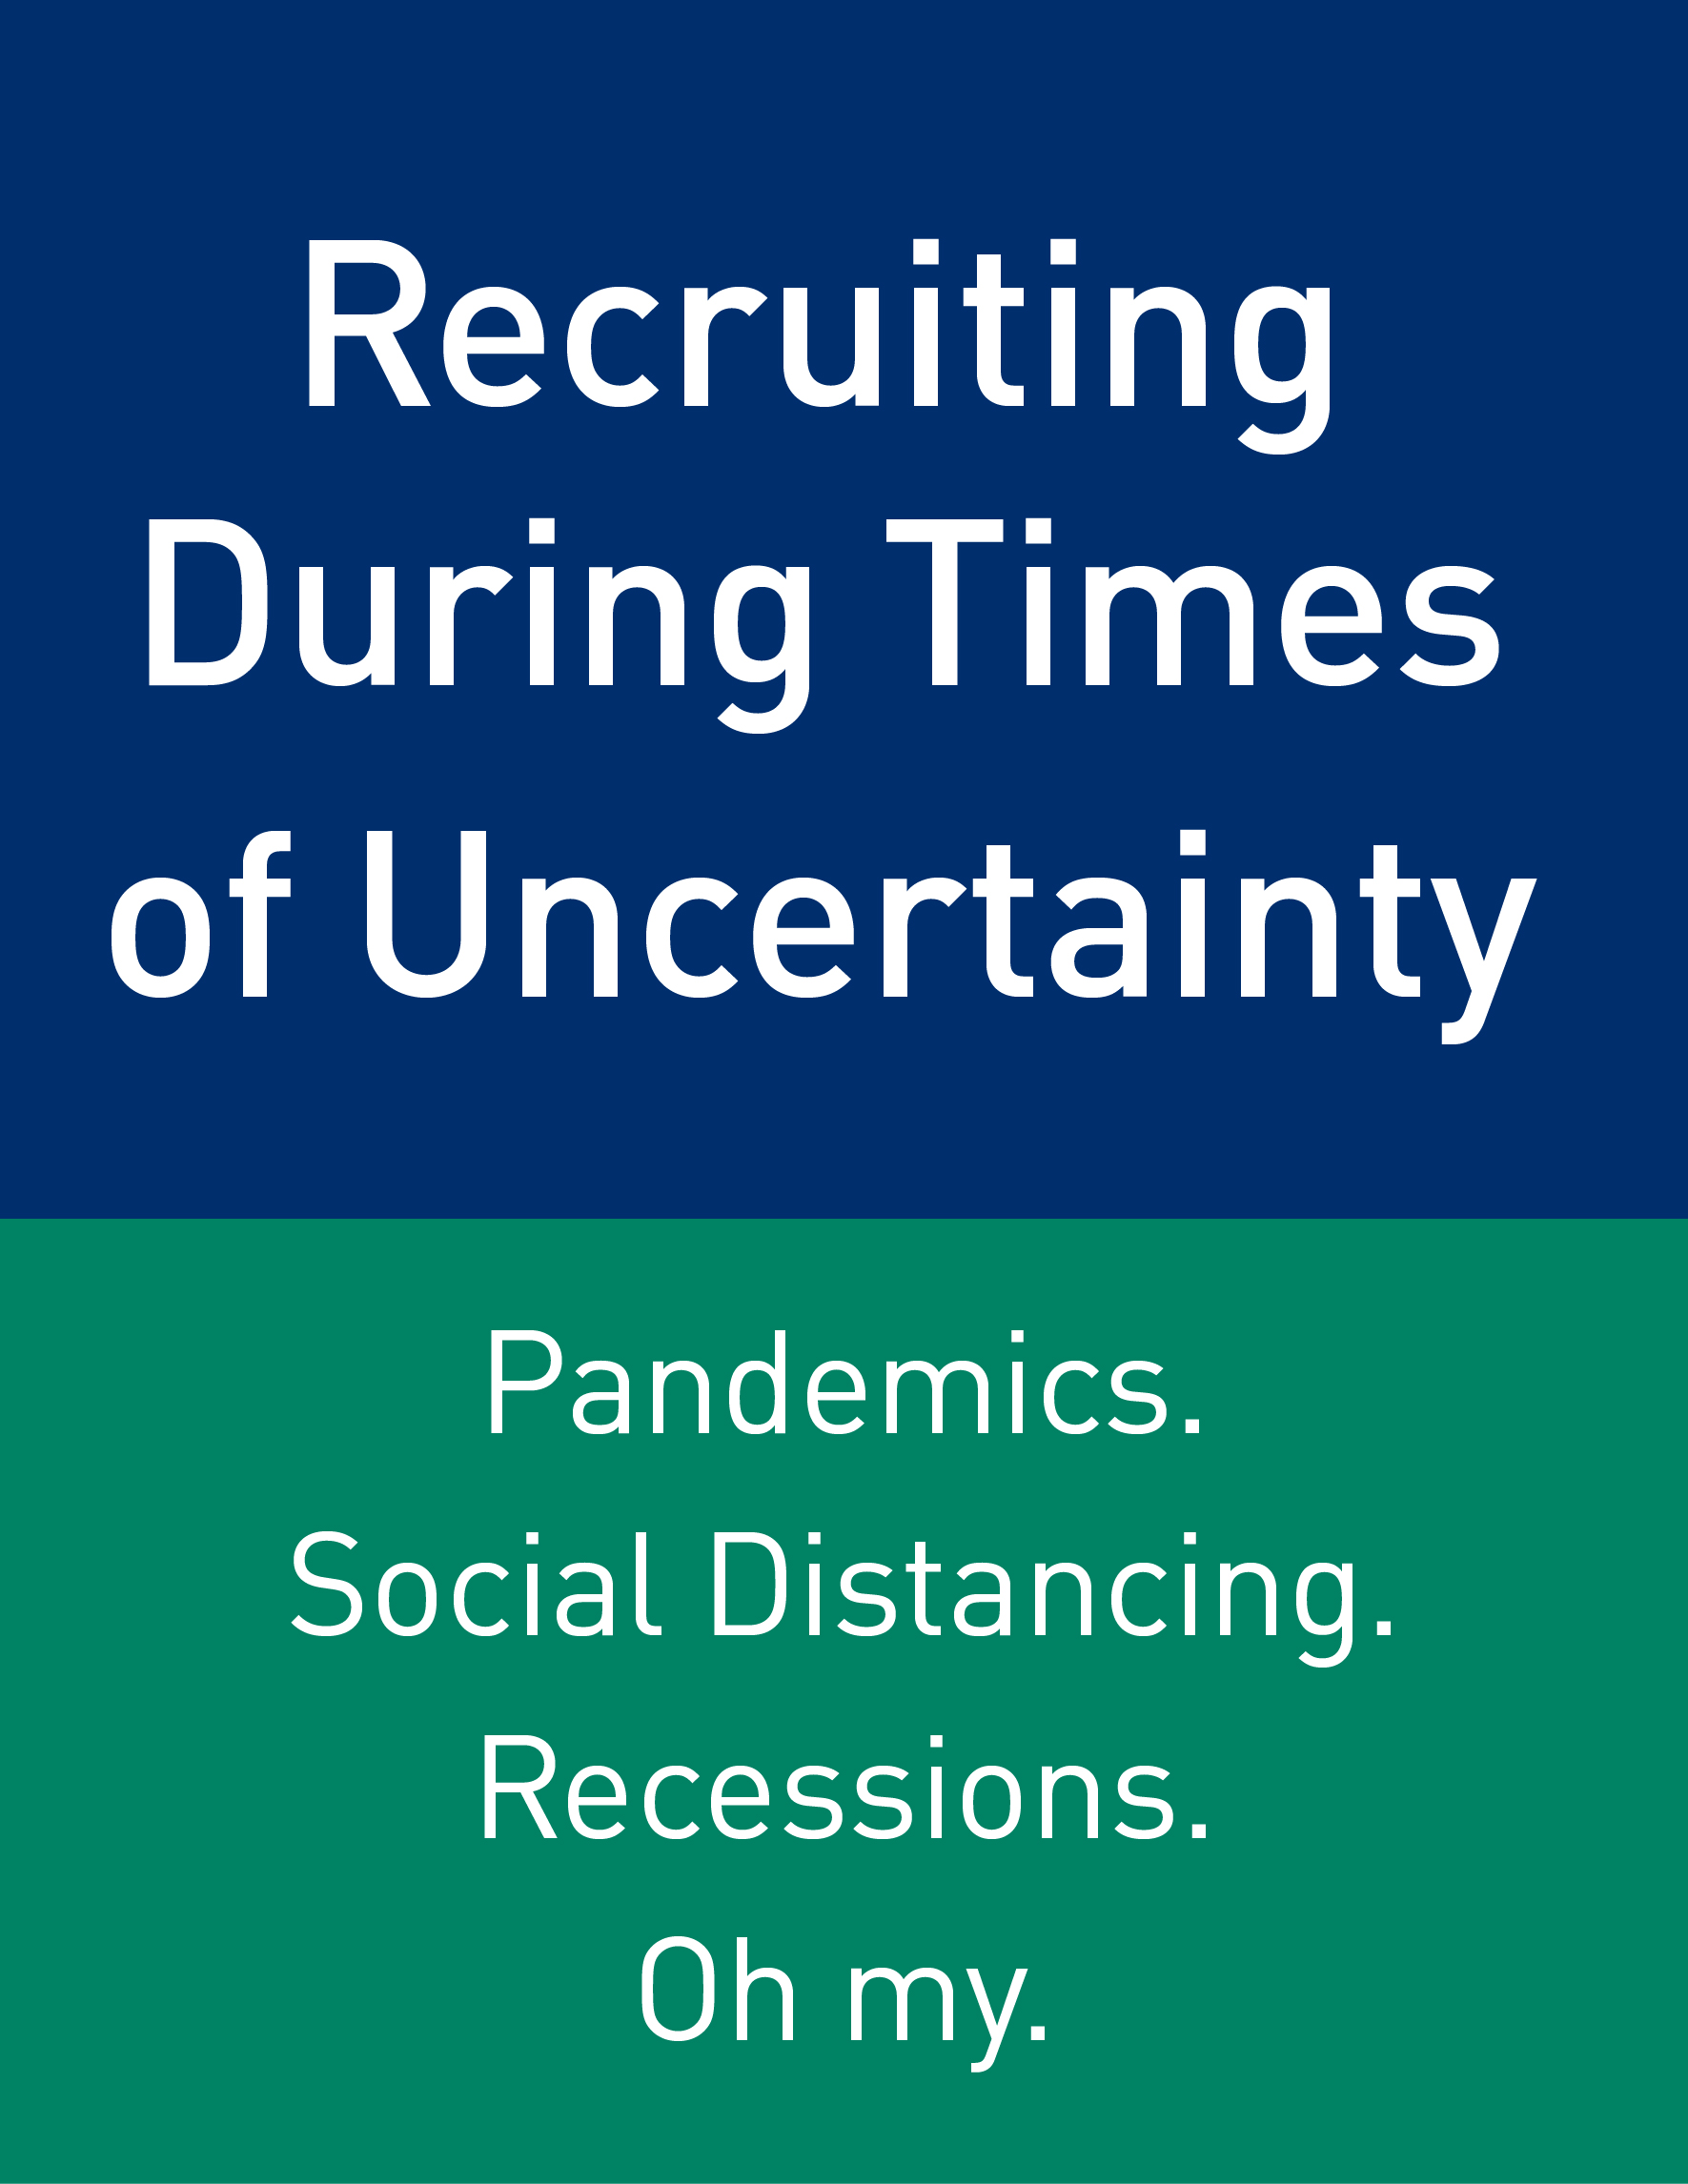 Recruiting During Times of Uncertainty